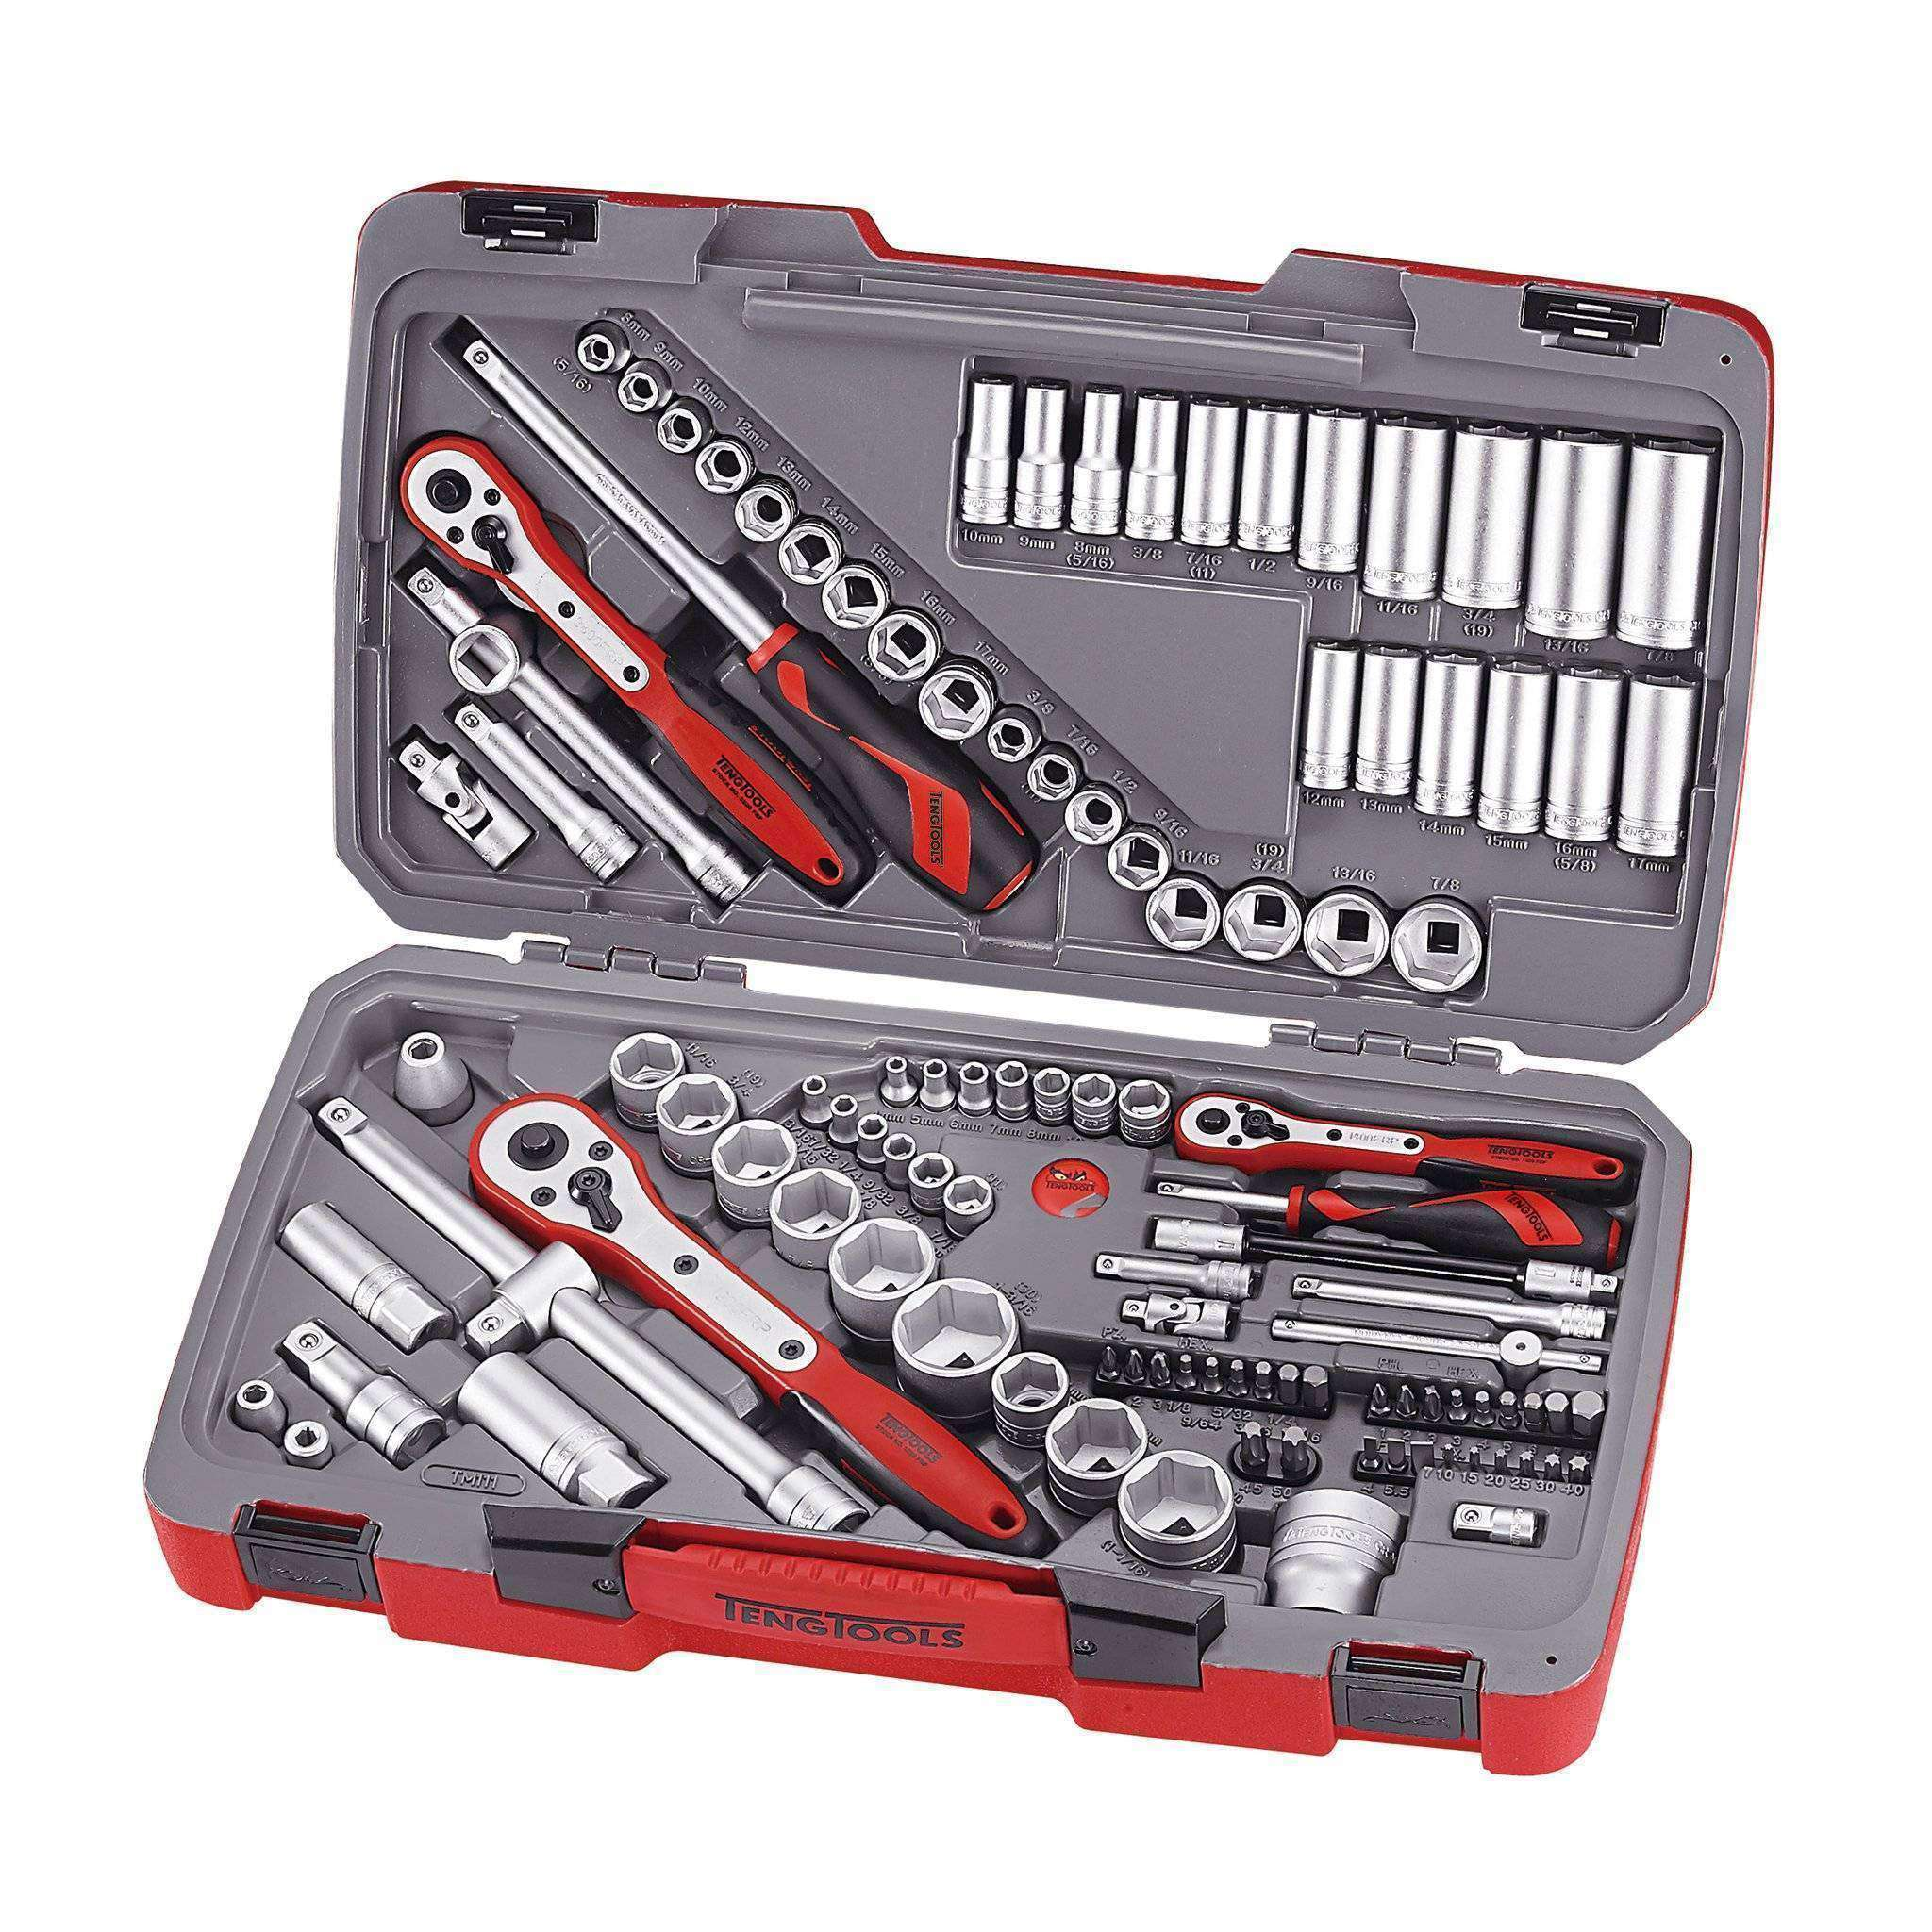 Teng Tools - 111 Piece Mixed Drive Socket Set 1/4, 3/8, 1/2 Inch - TEN-O-TM111 - Teng Tools USA